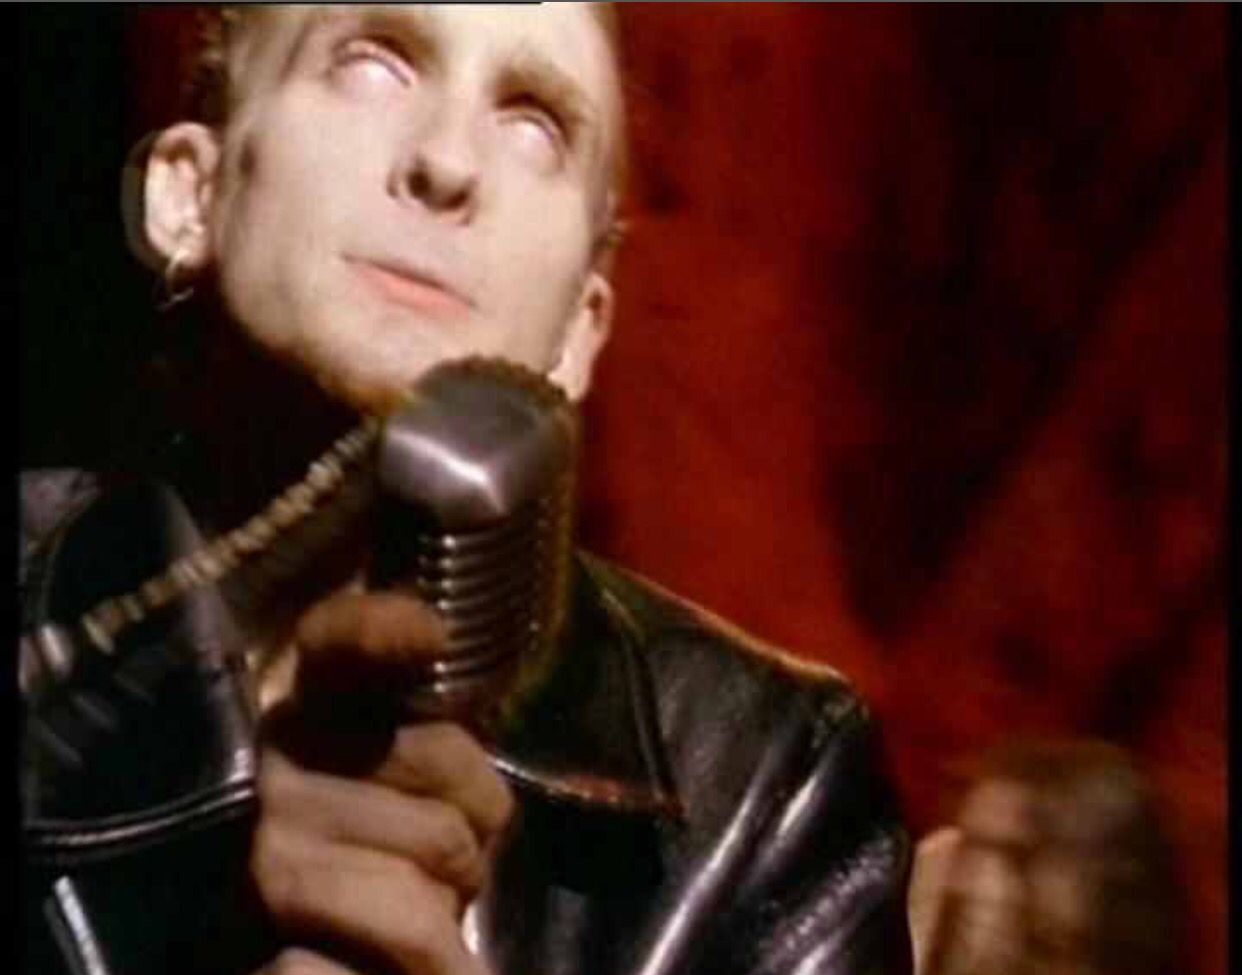 Layne Staley Them Bones Video Layne Staley Staley Alice In